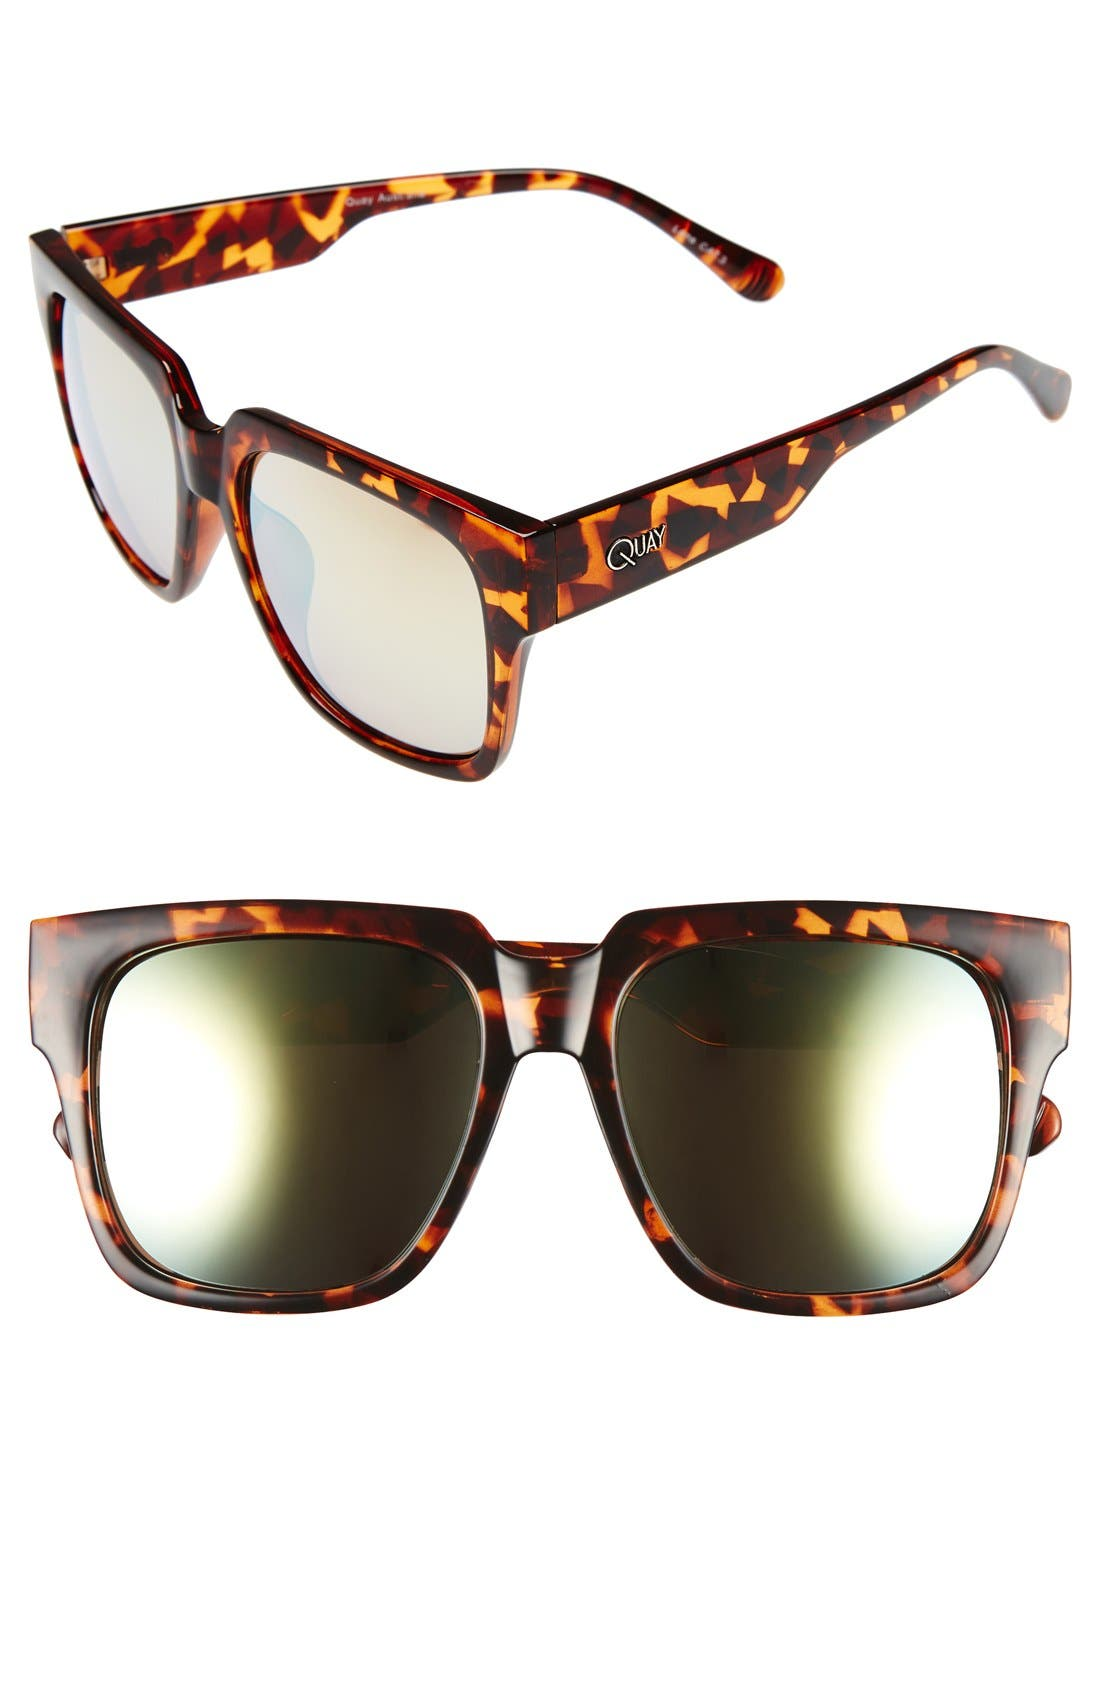 'On the Prowl' 55mm Square Sunglasses,                             Main thumbnail 1, color,